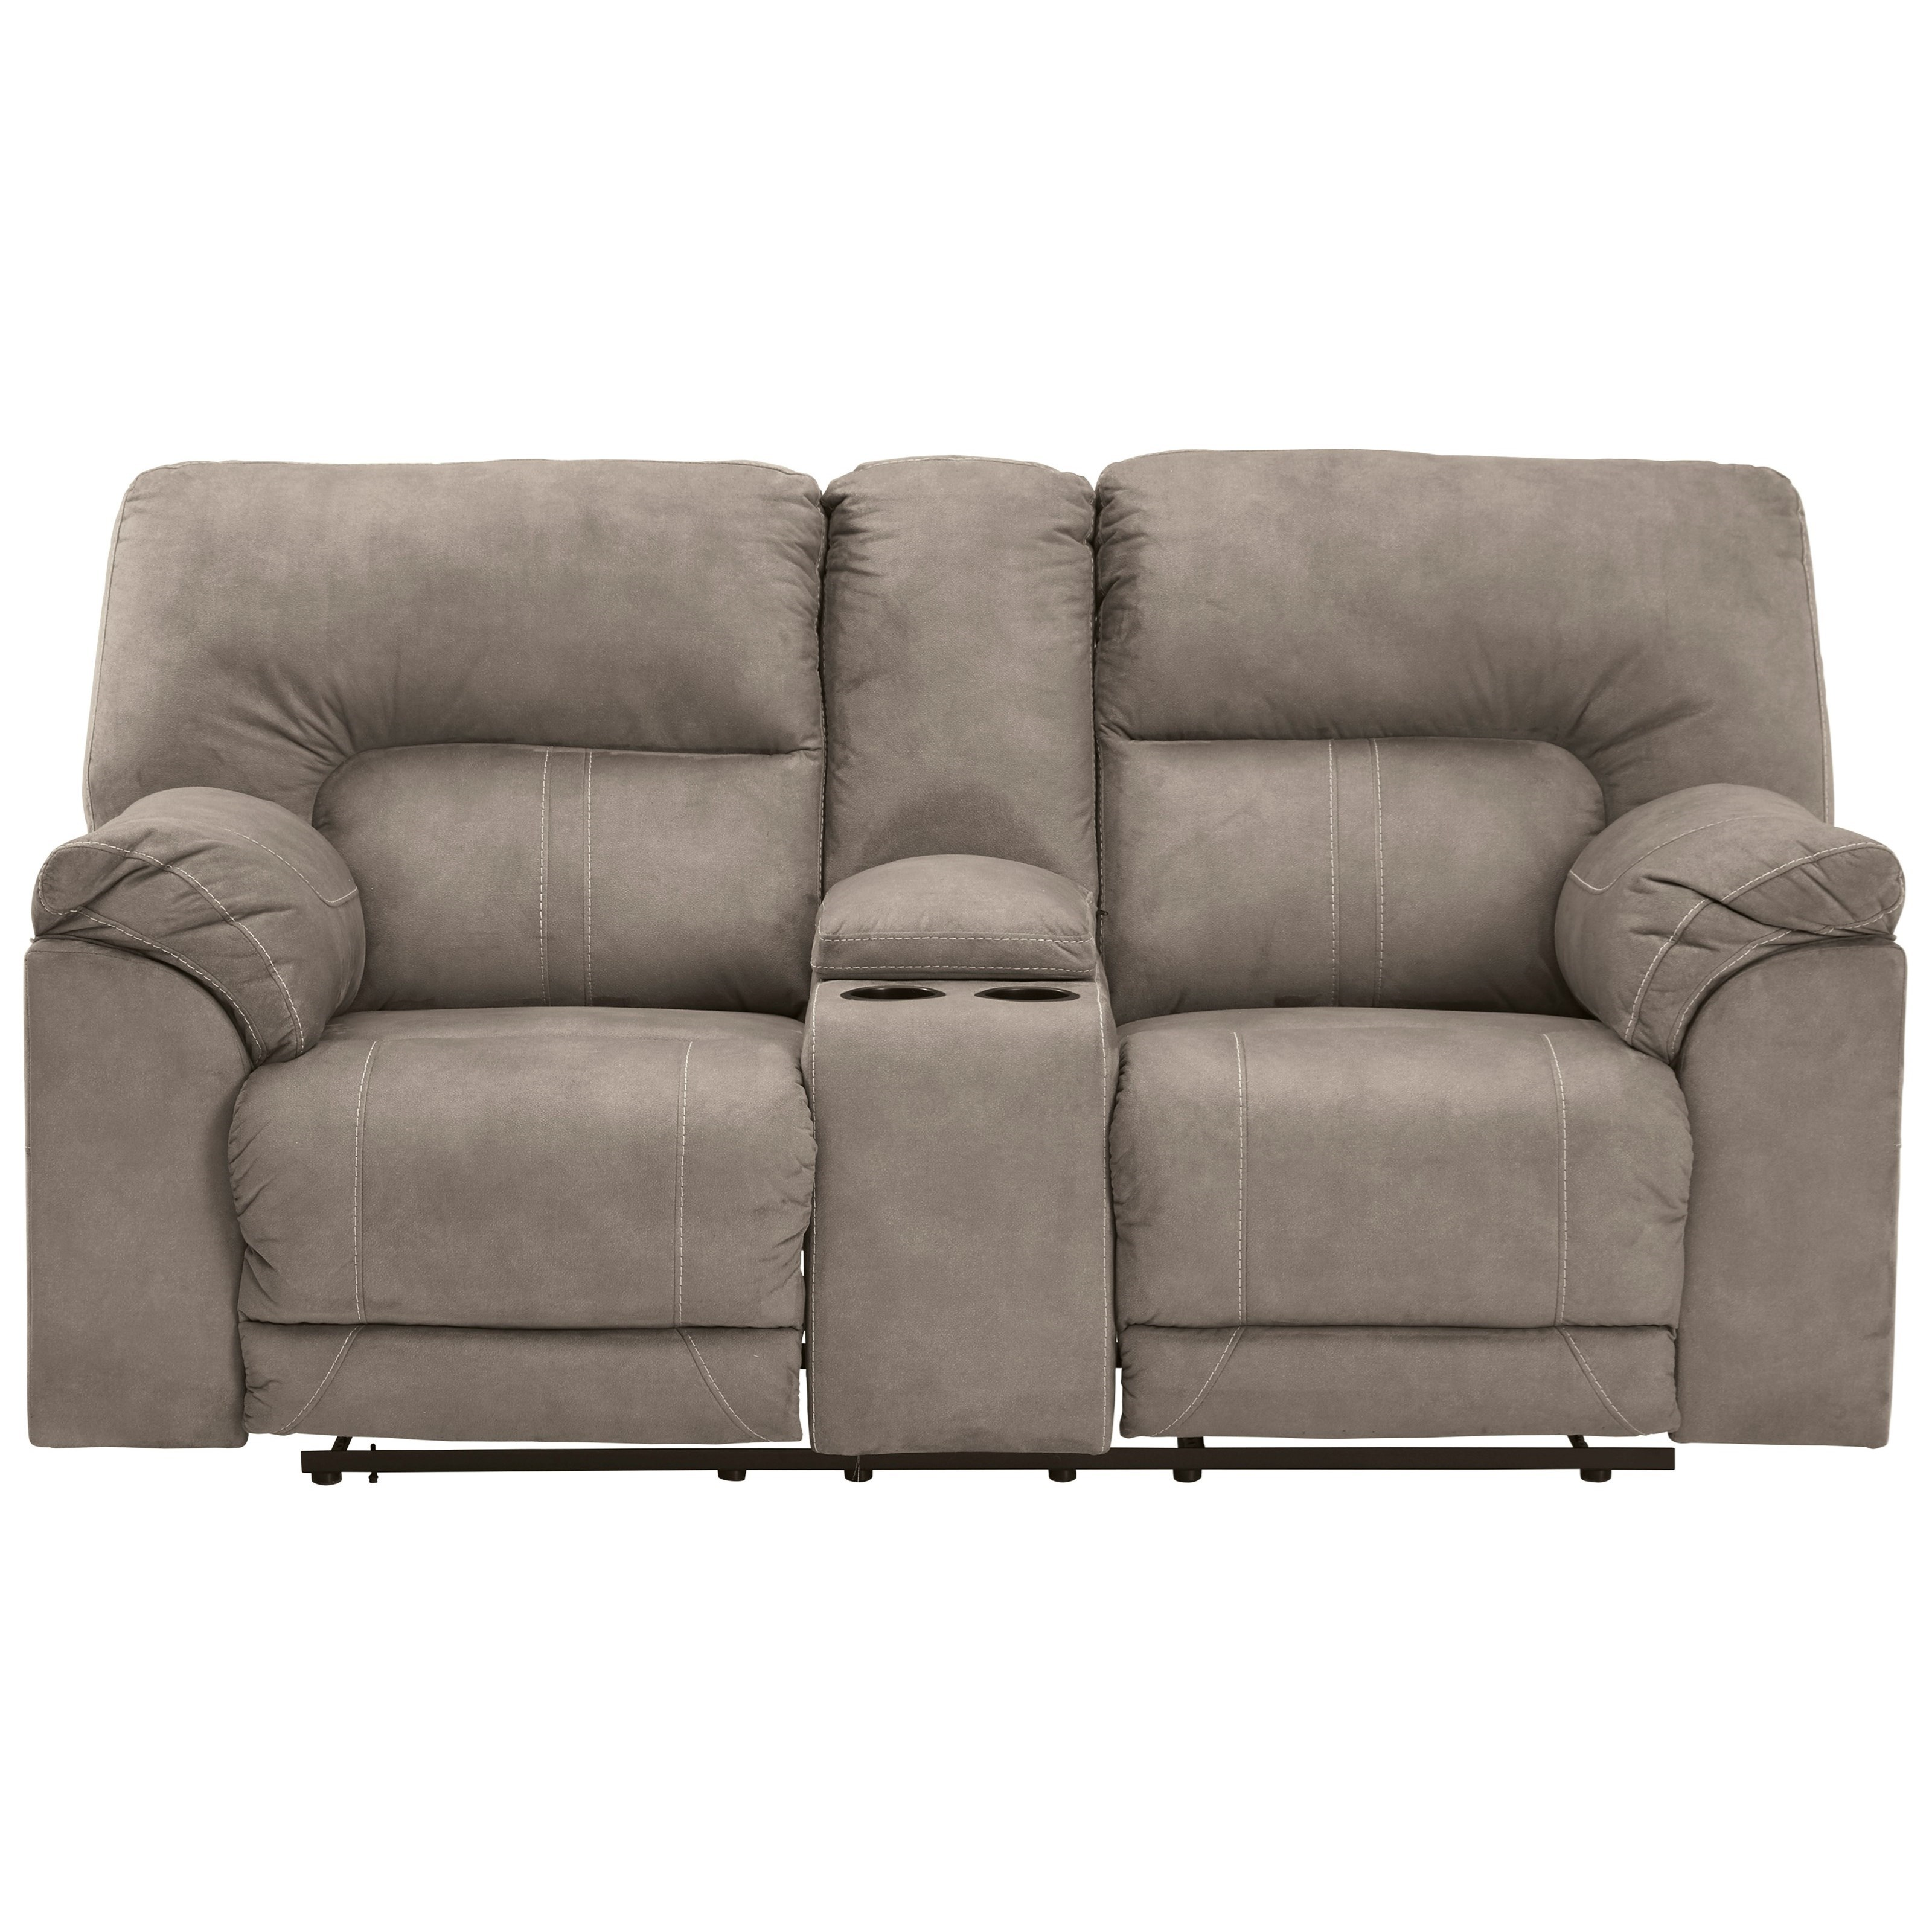 Cavalcade Double Reclining Power Loveseat with Console by Benchcraft at Standard Furniture